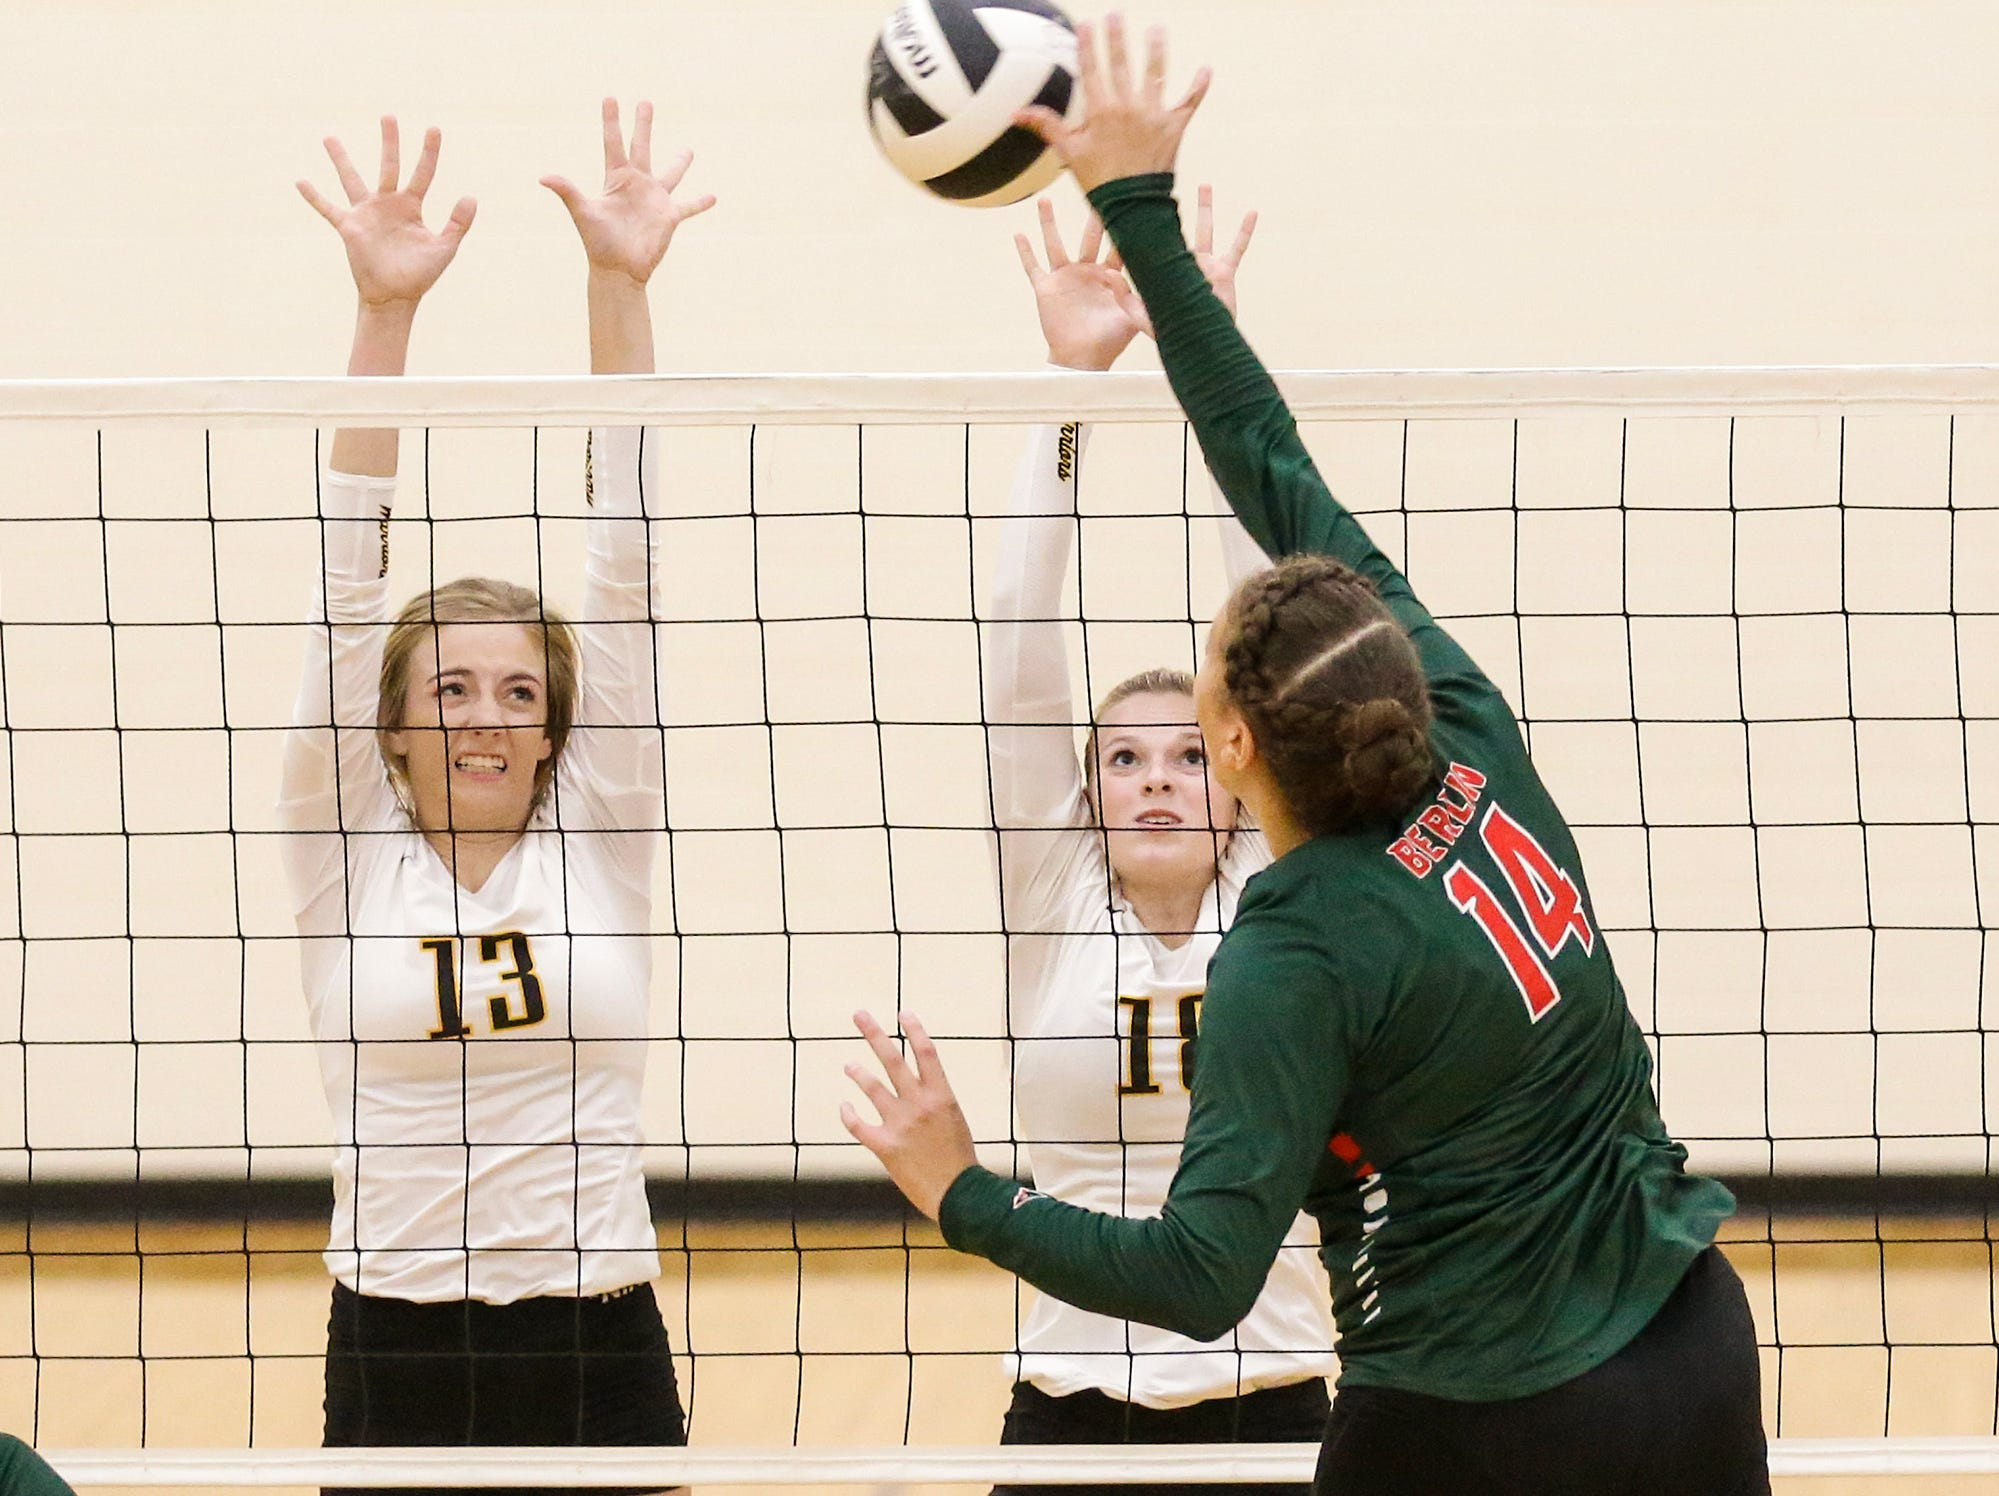 Waupun High School volleyball's McKenna Cunningham and Makenna Harmsen go up to block the ball against Berlin High School's Bria Reiser during their WIAA regional quarter-final playoff game Tuesday, Oct. 16, 2018, in Waupun.